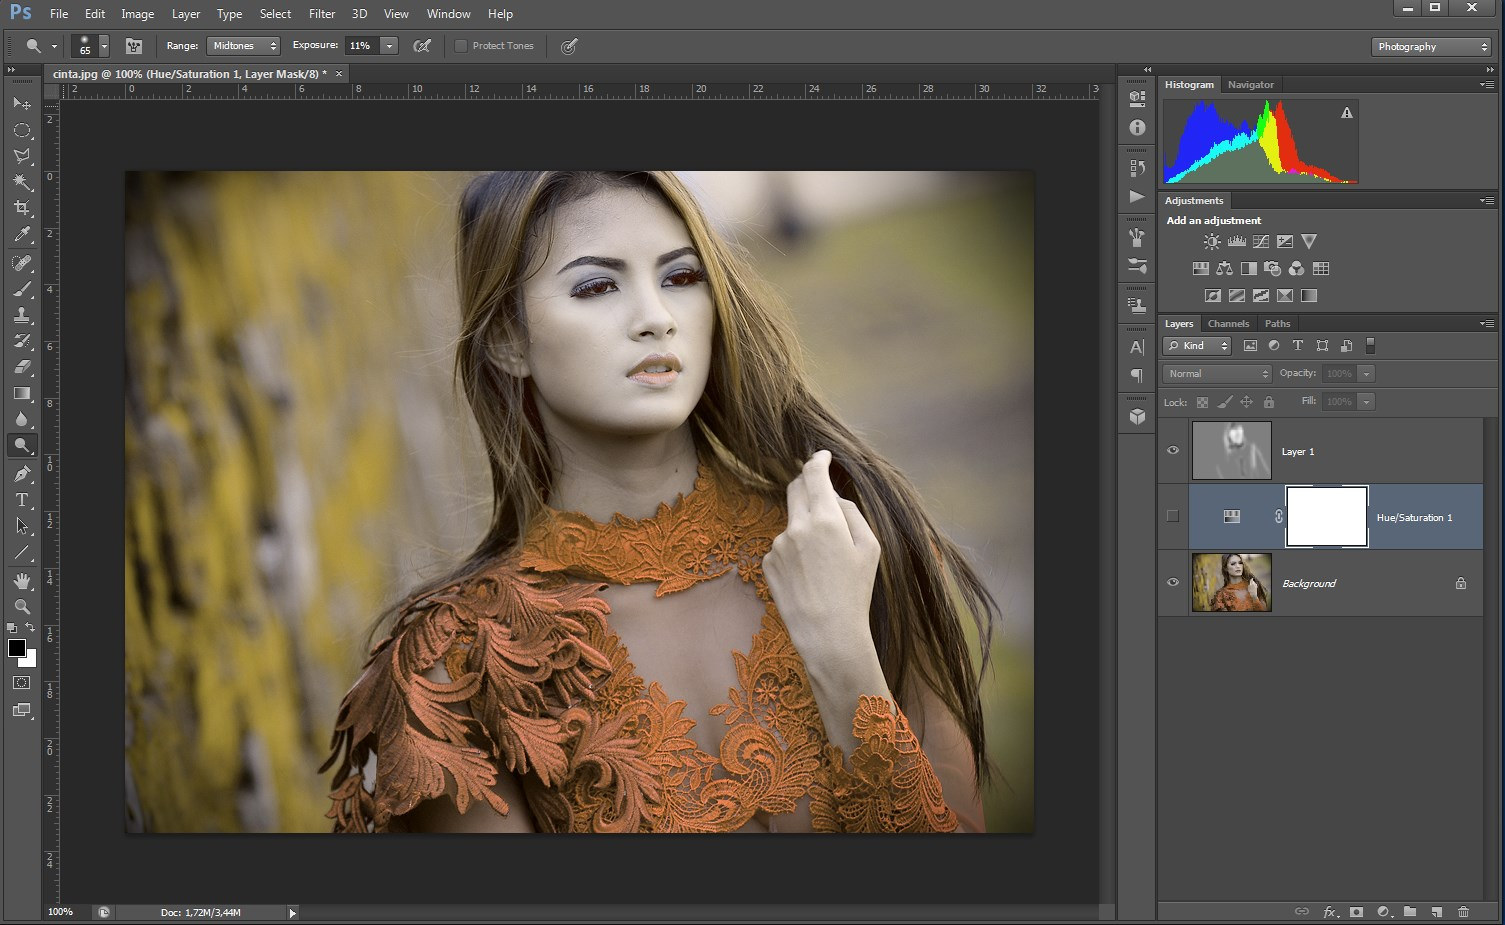 cara mengedit foto dengan tool dodge and burn pada photoshop